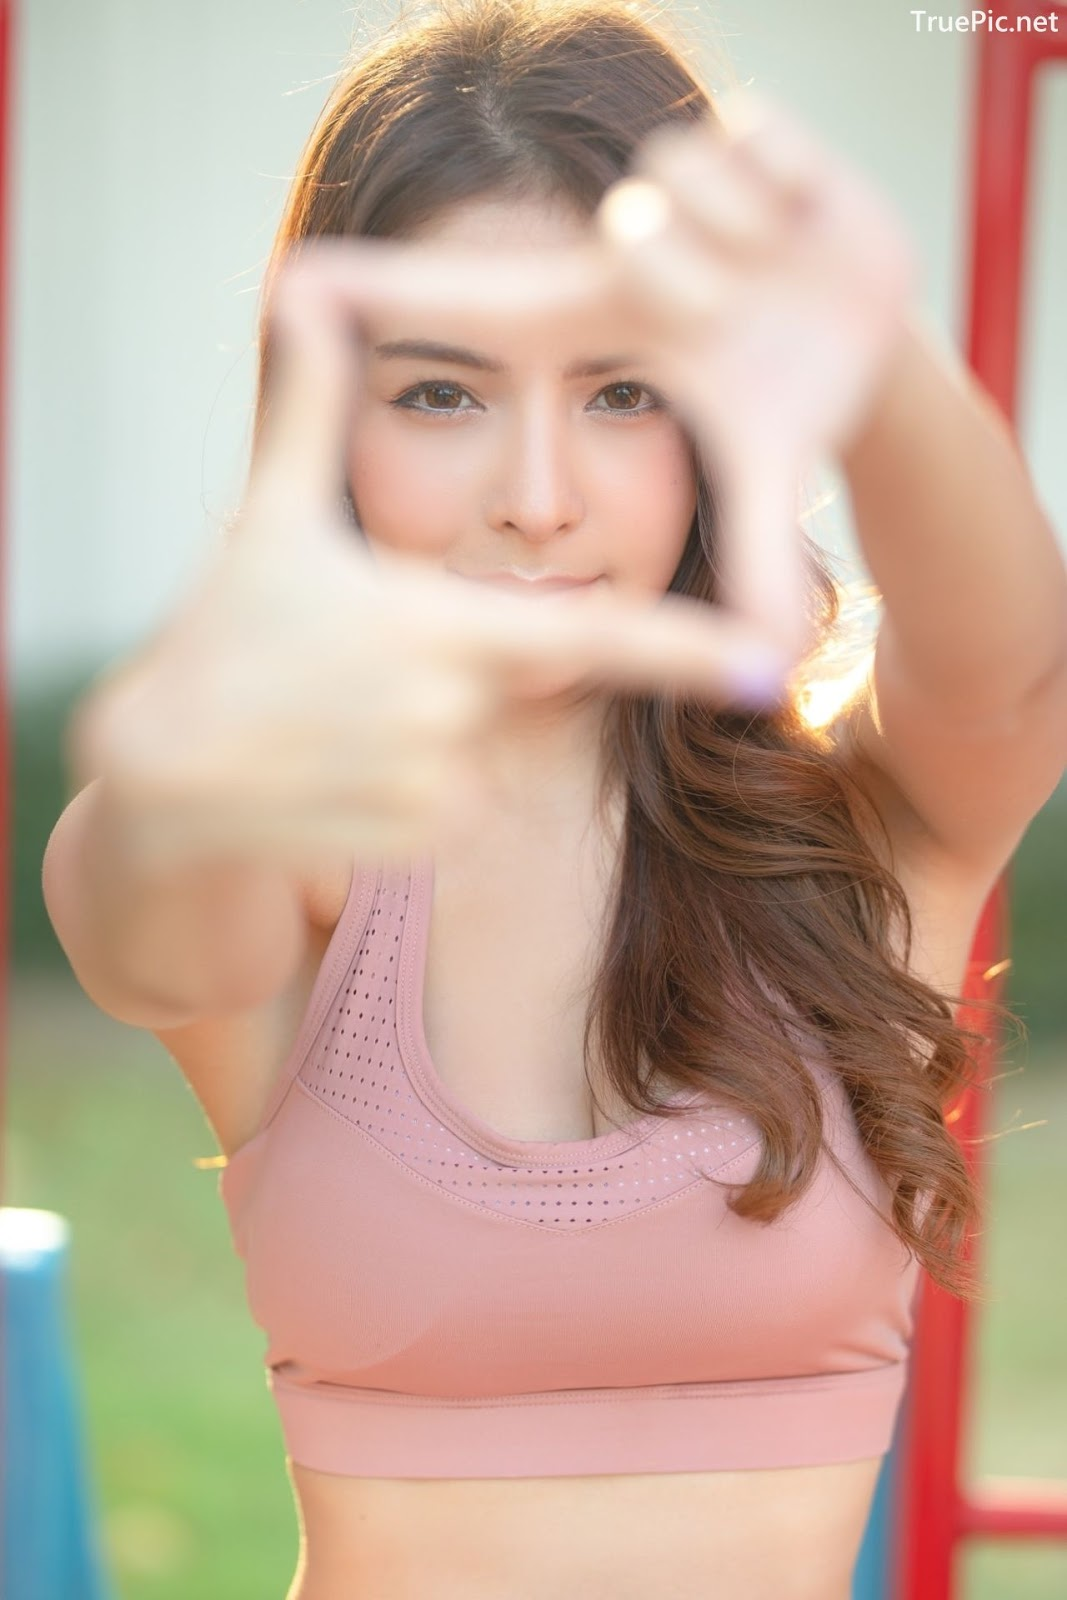 Image-Thailand-Beautiful-Model-Soithip-Palwongpaisal-Pink-Fitness-Girl-TruePic.net- Picture-9